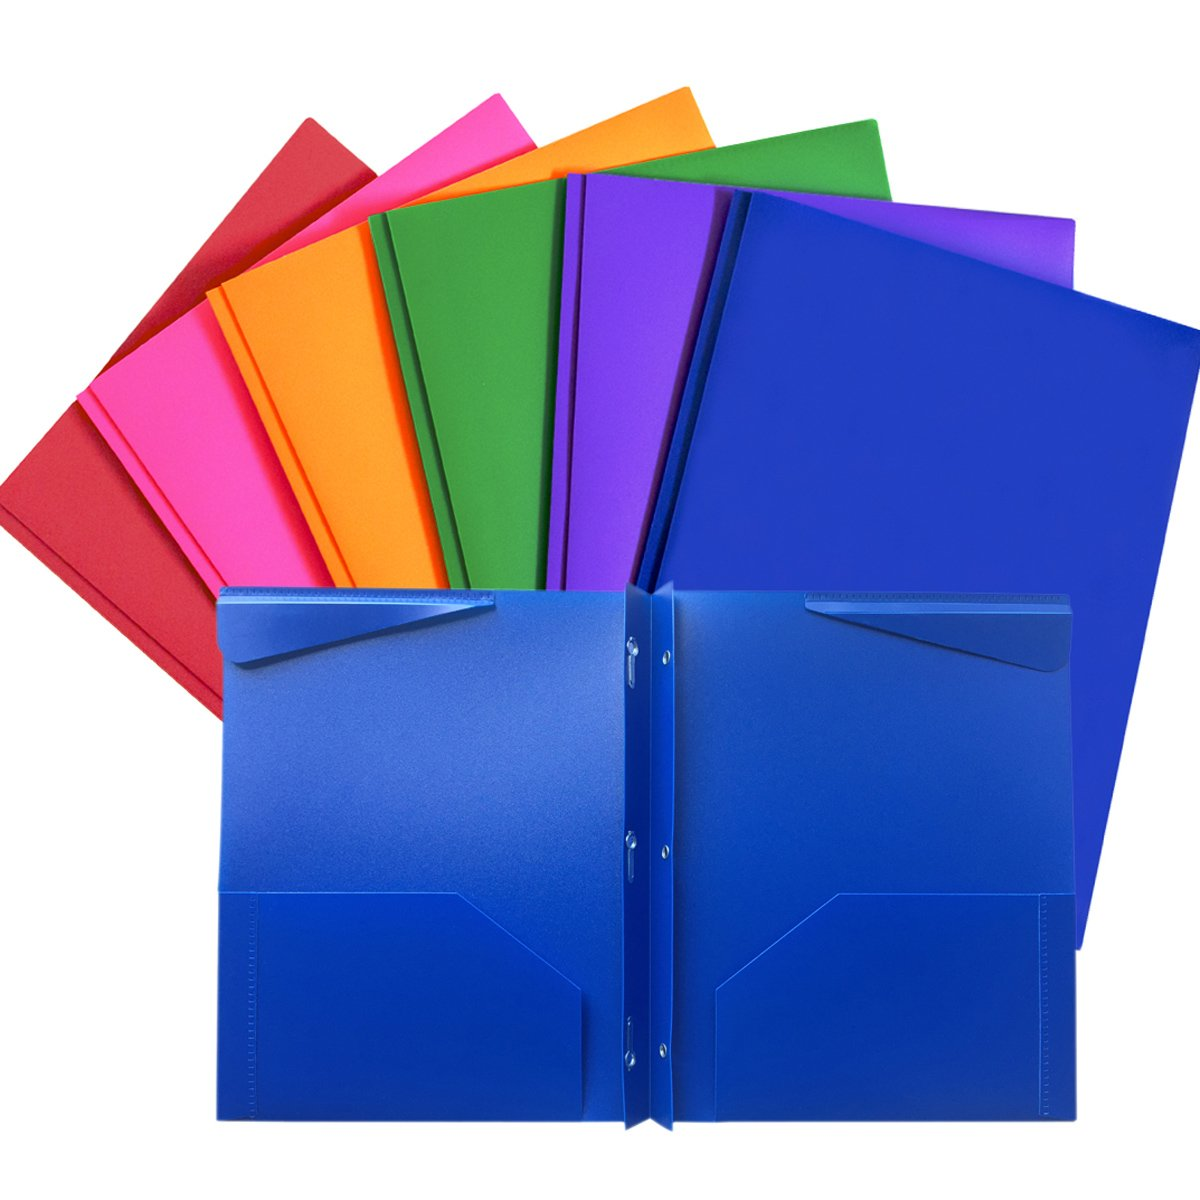 Folders, Plastic Folders with Pockets and Prongs, Heavy Duty Folders with Brads, 6/Pack